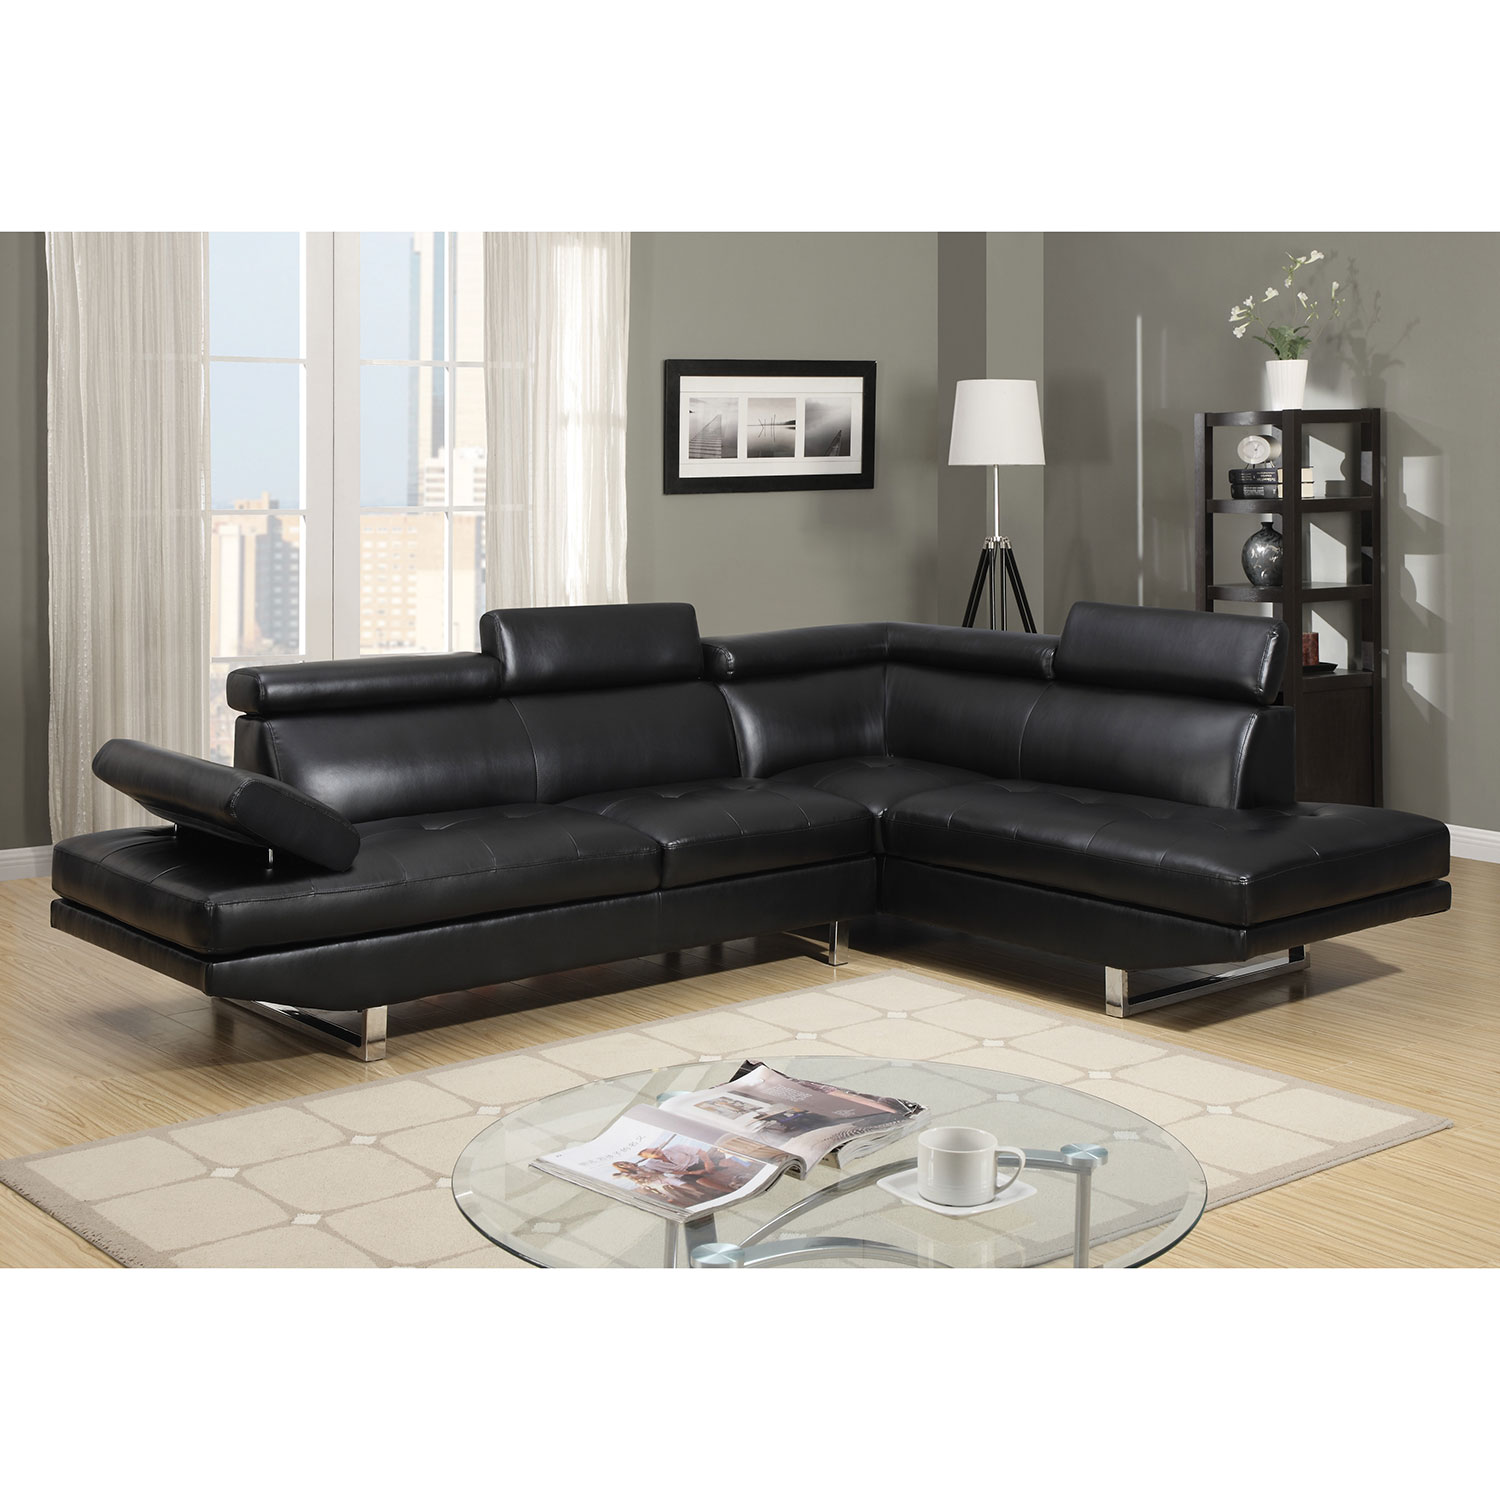 Twilight Contemporary 2 Piece Faux Leather Sectional Sofa with